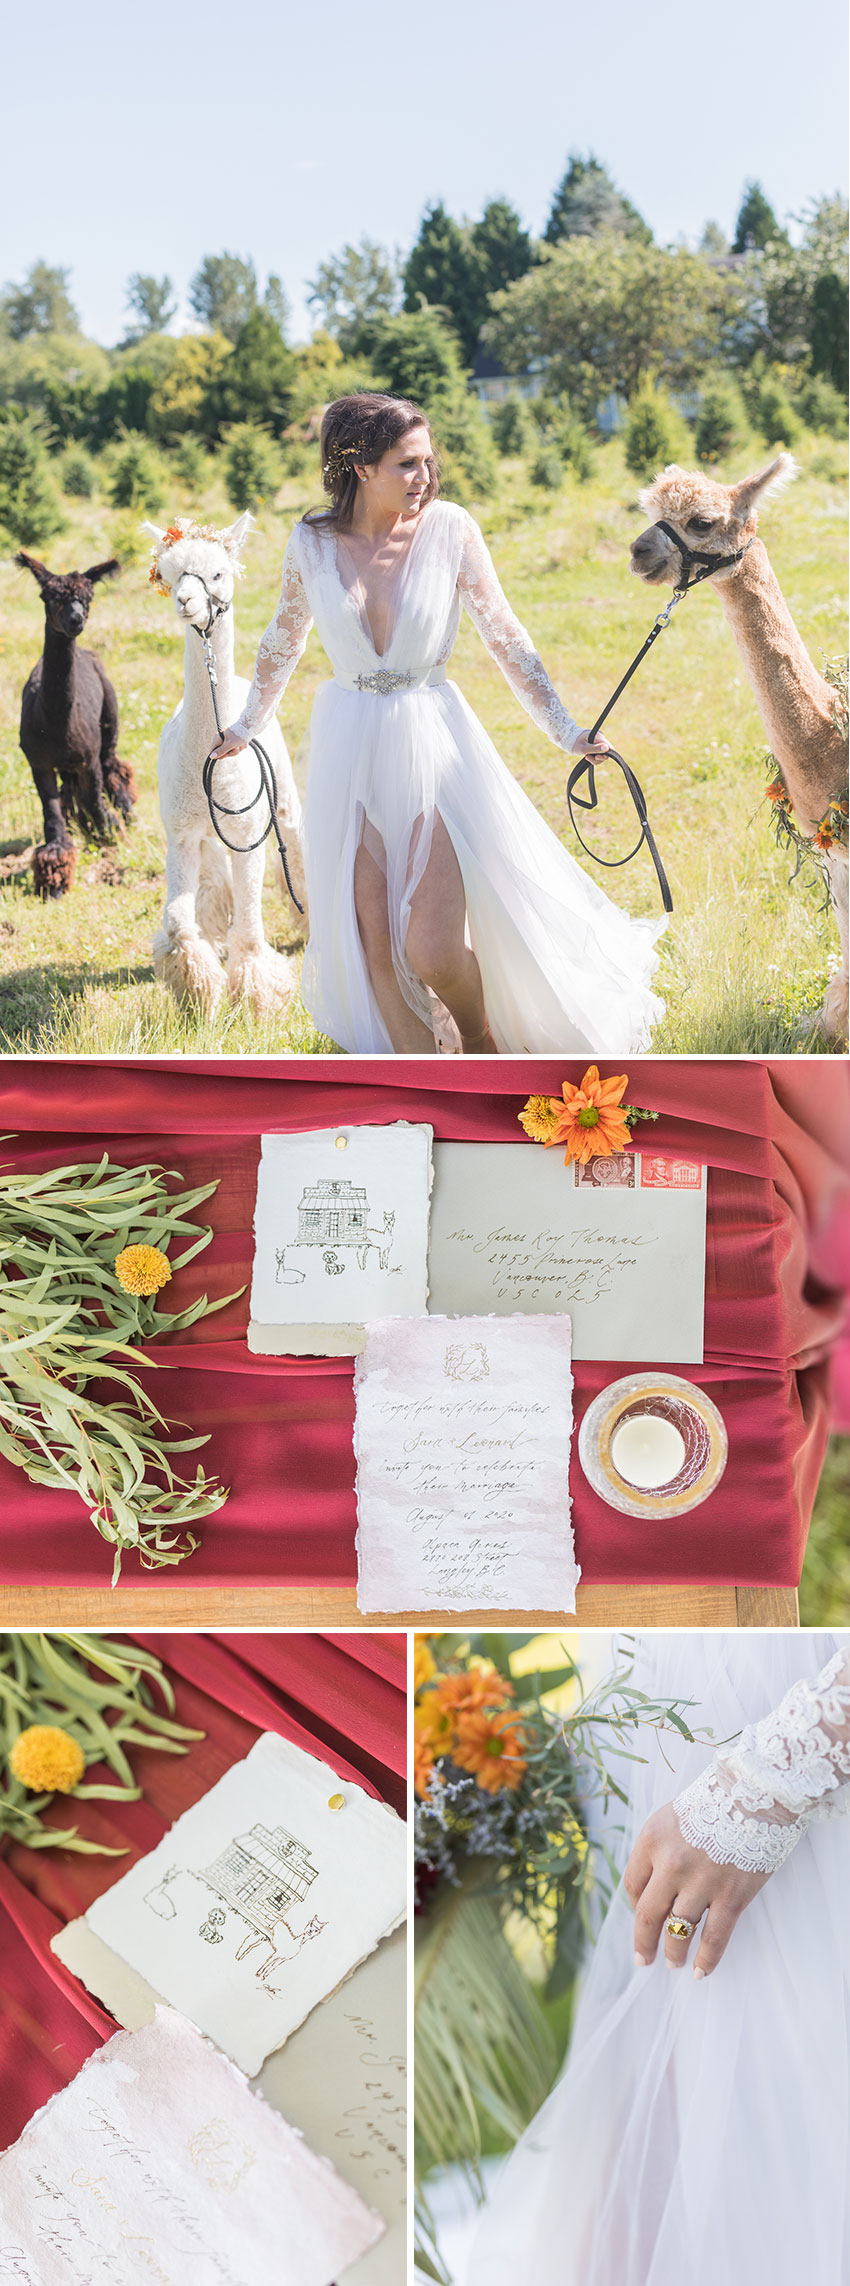 Alpaca Bridal style shoot inspiration featured in Perfect Wedding Magazine